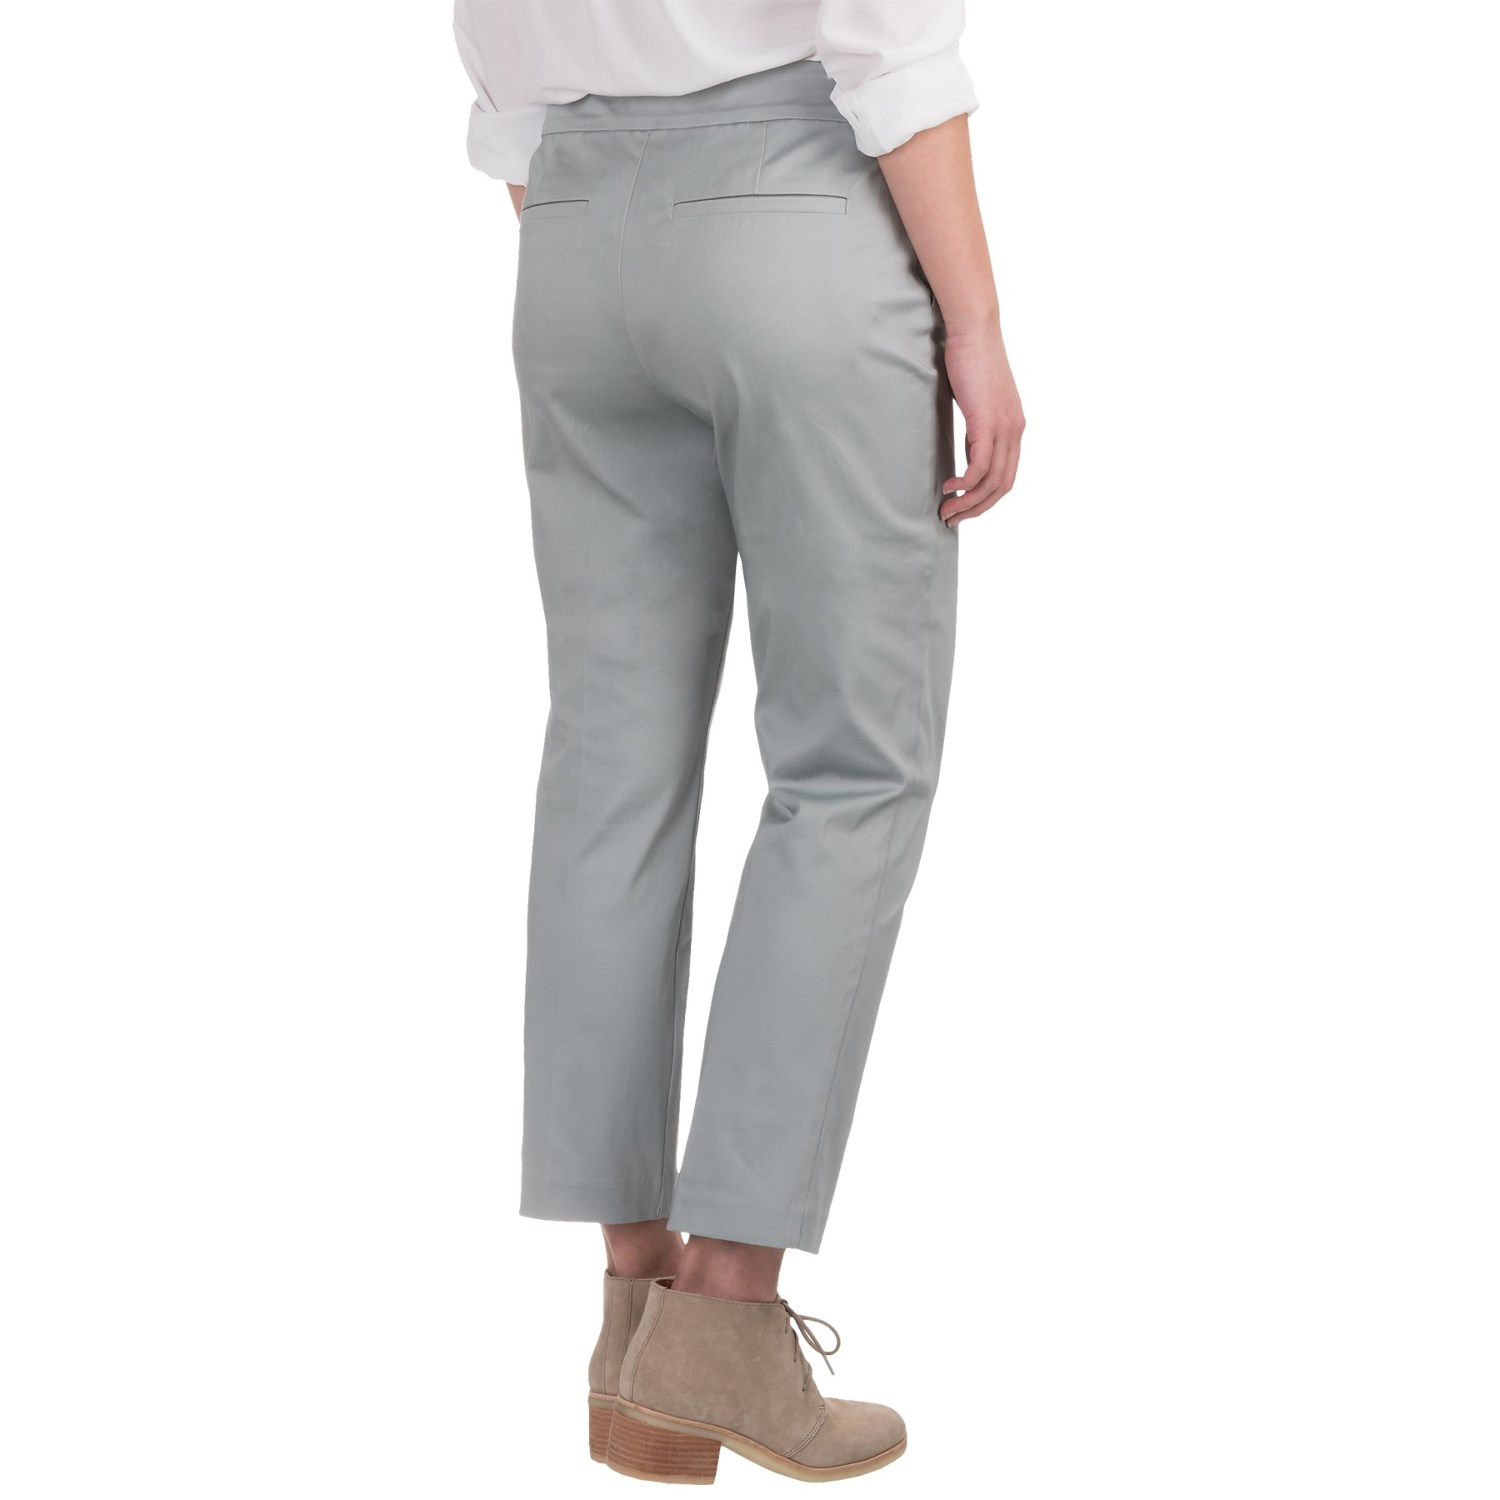 Model Lafayette 148 New York Twill Ankle Pants (For Women)